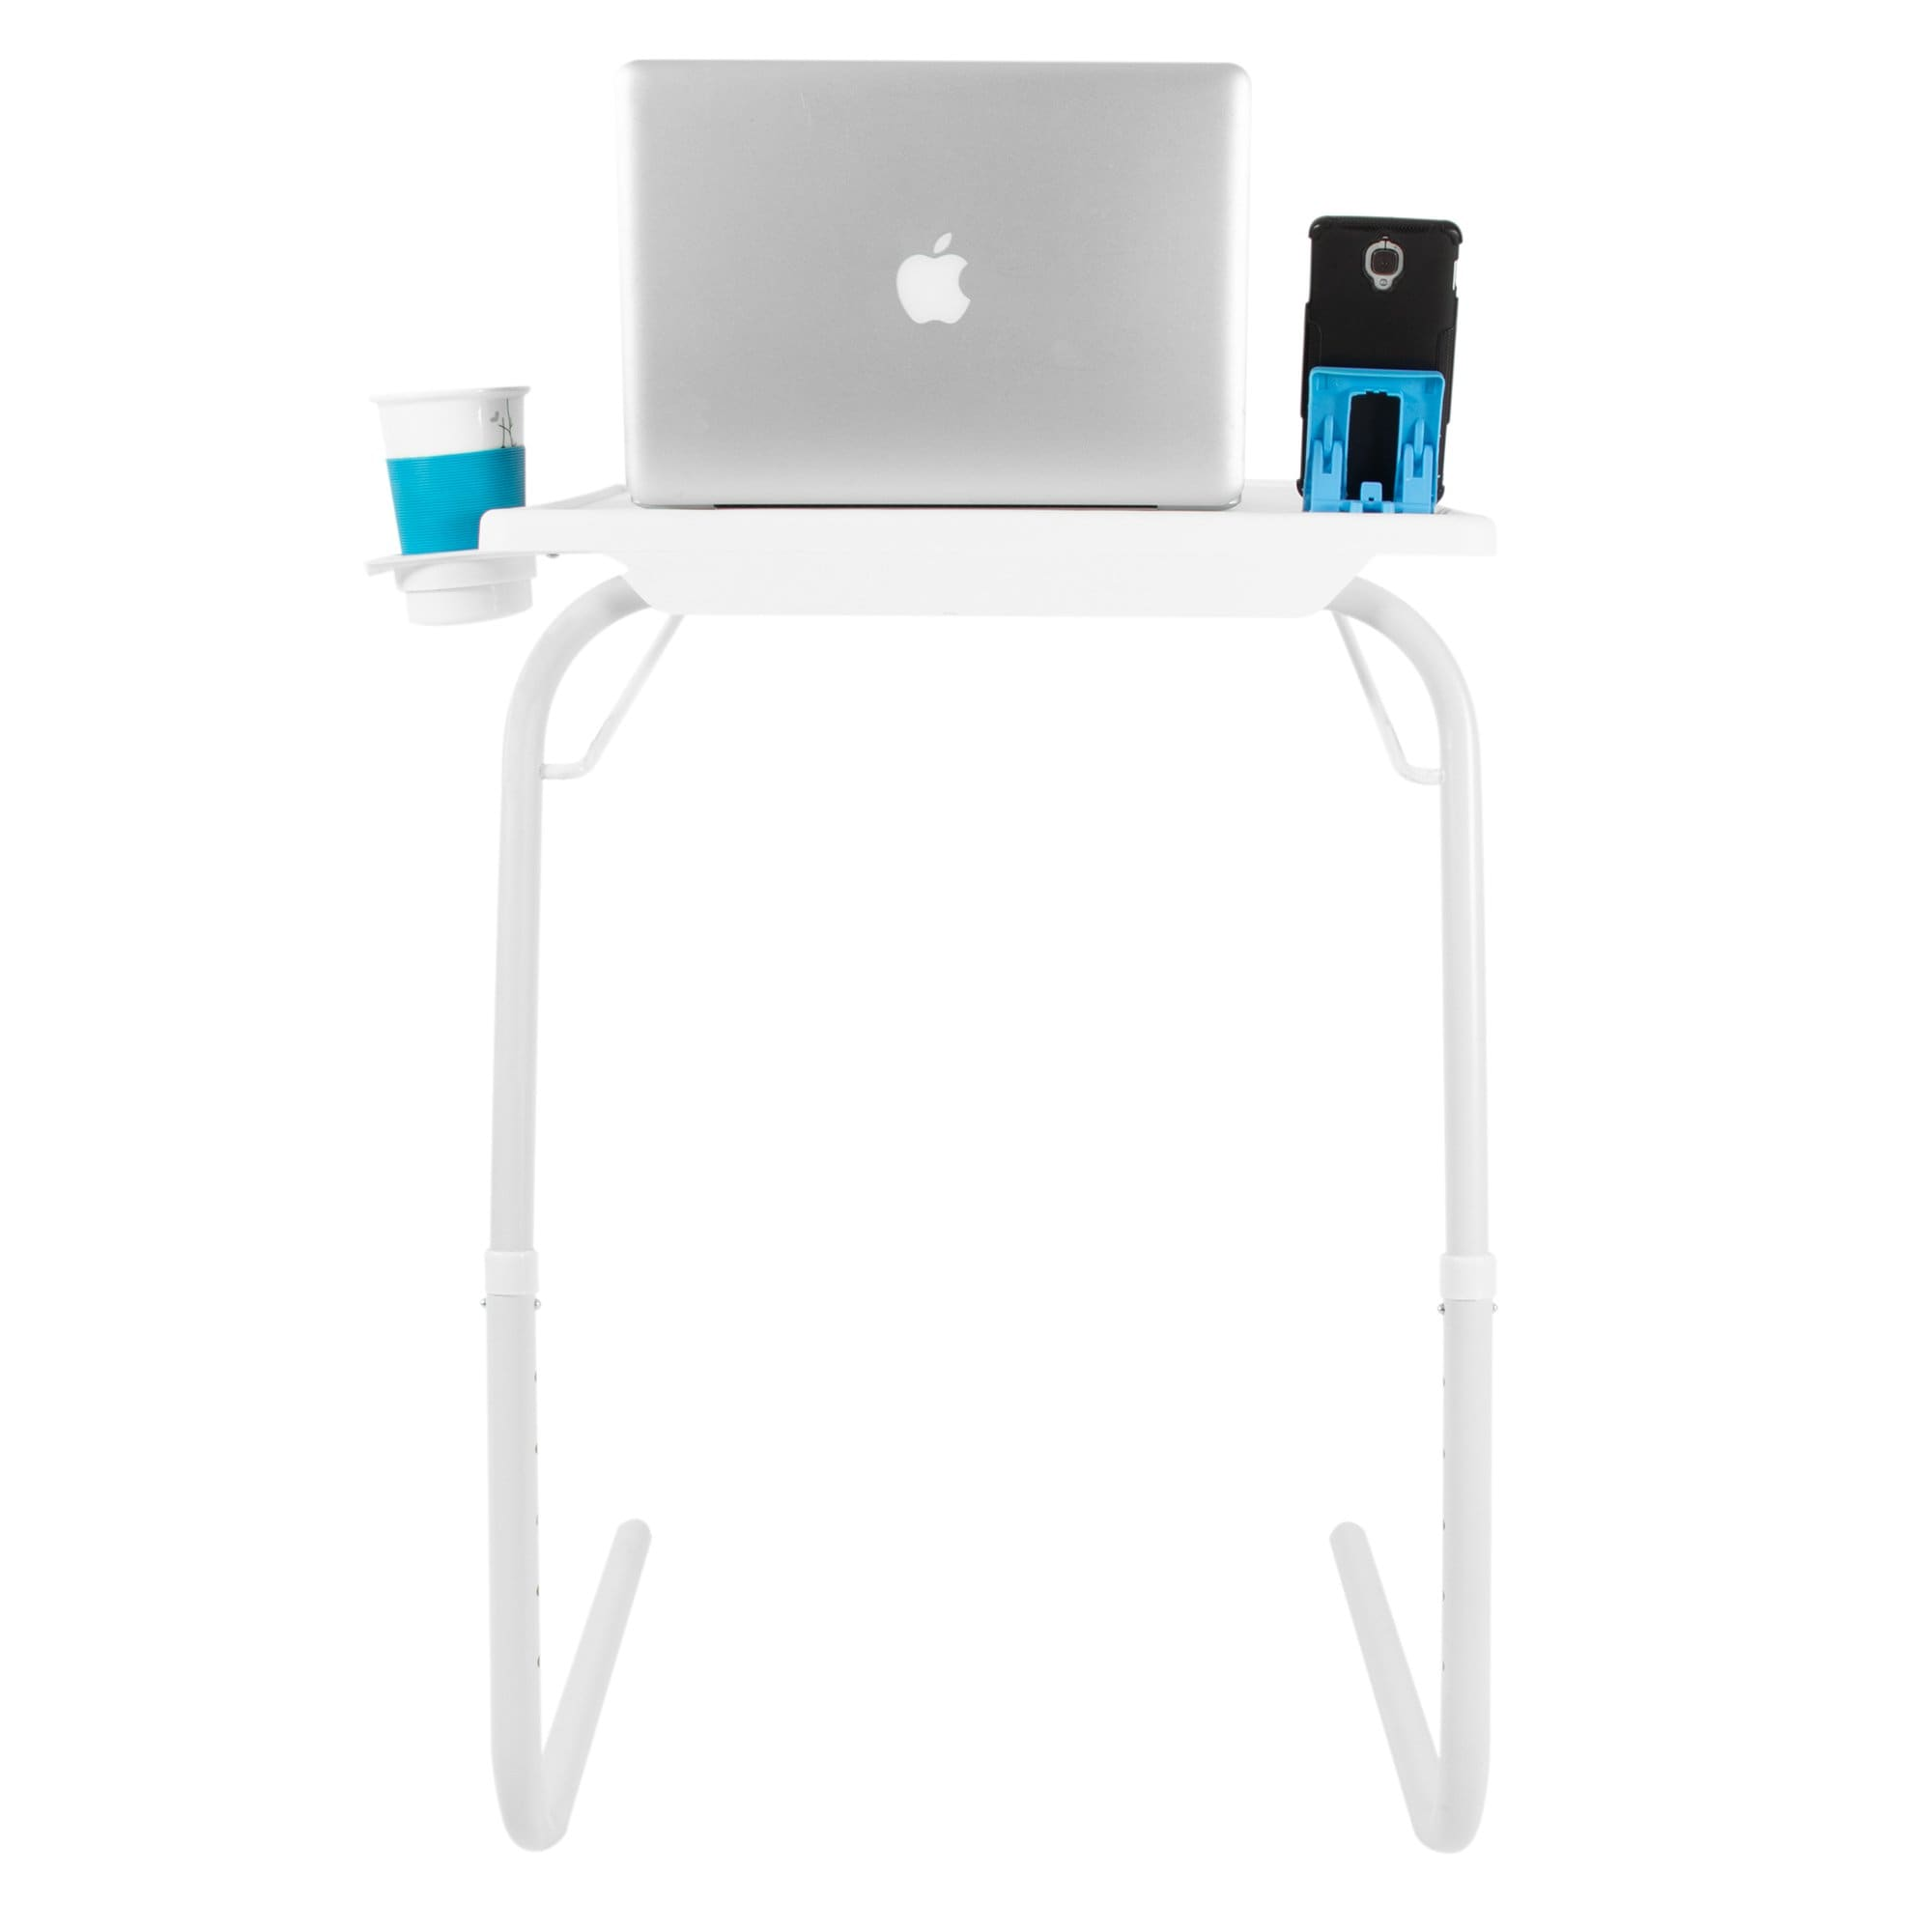 SU KASSA Wudore Series -Multi Purpose Table-FULL WHITE